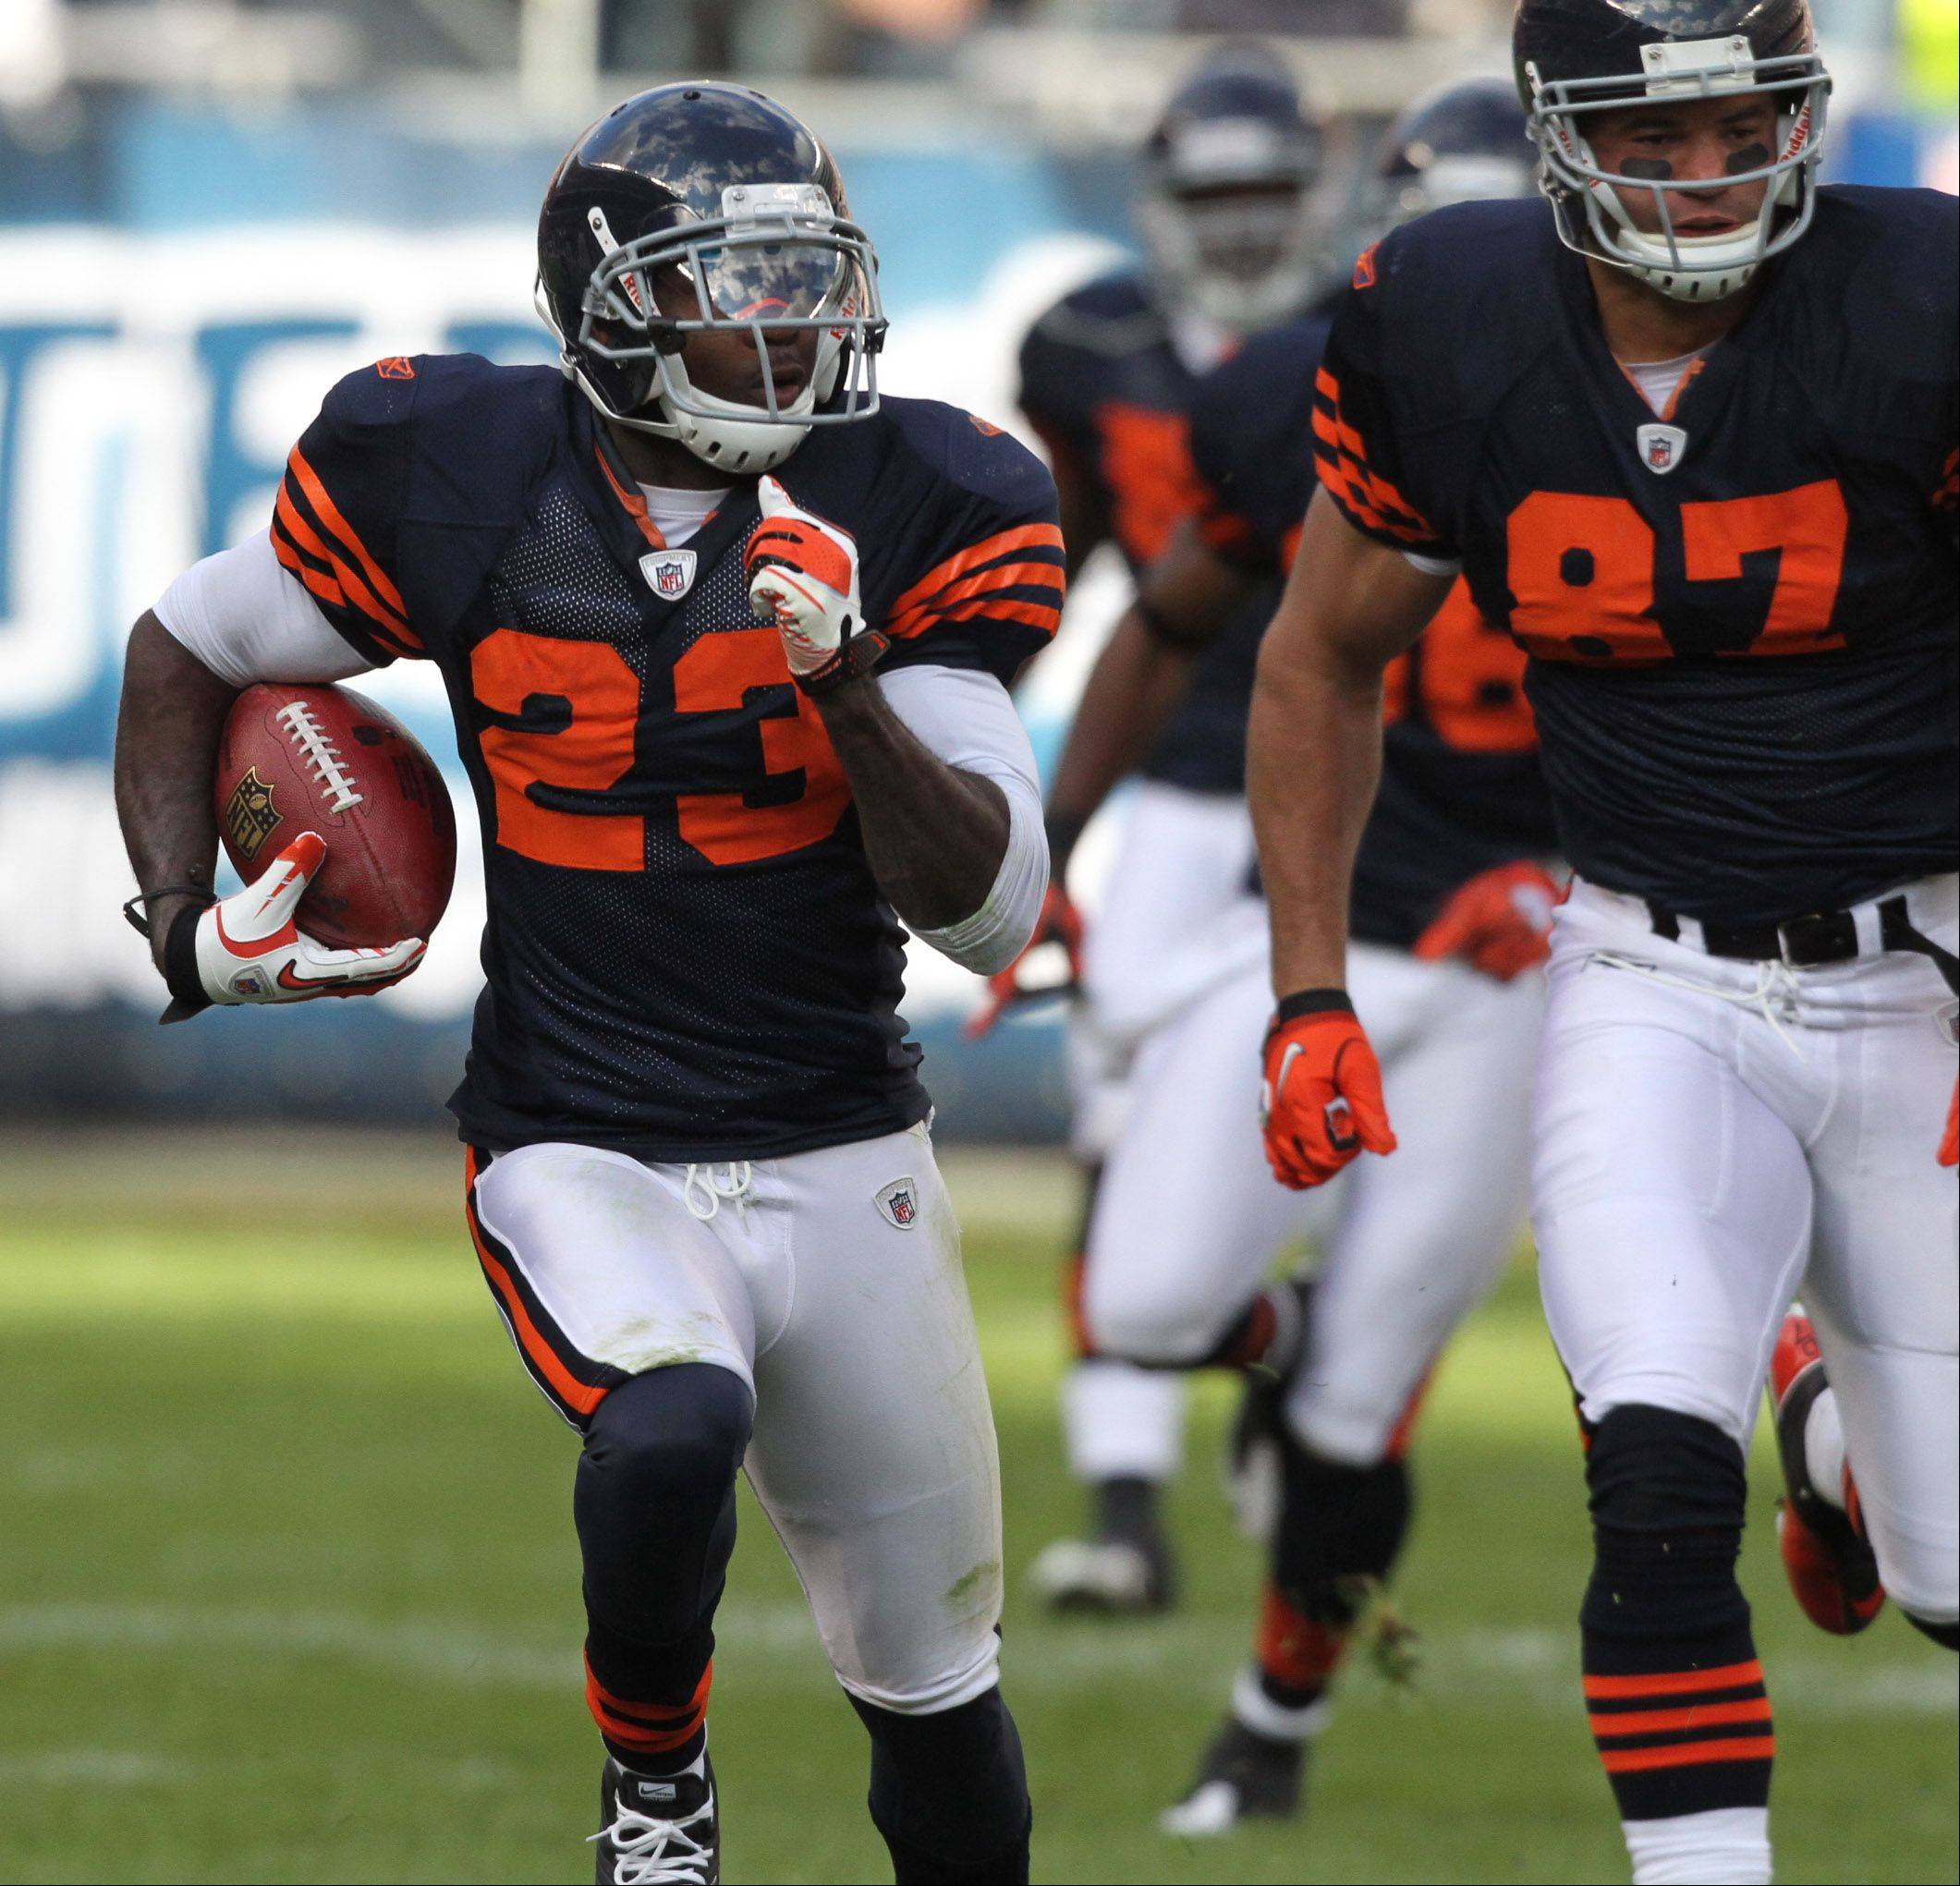 Devin Hester wants a fresh start, and it's the right time for the Bears to give him one.